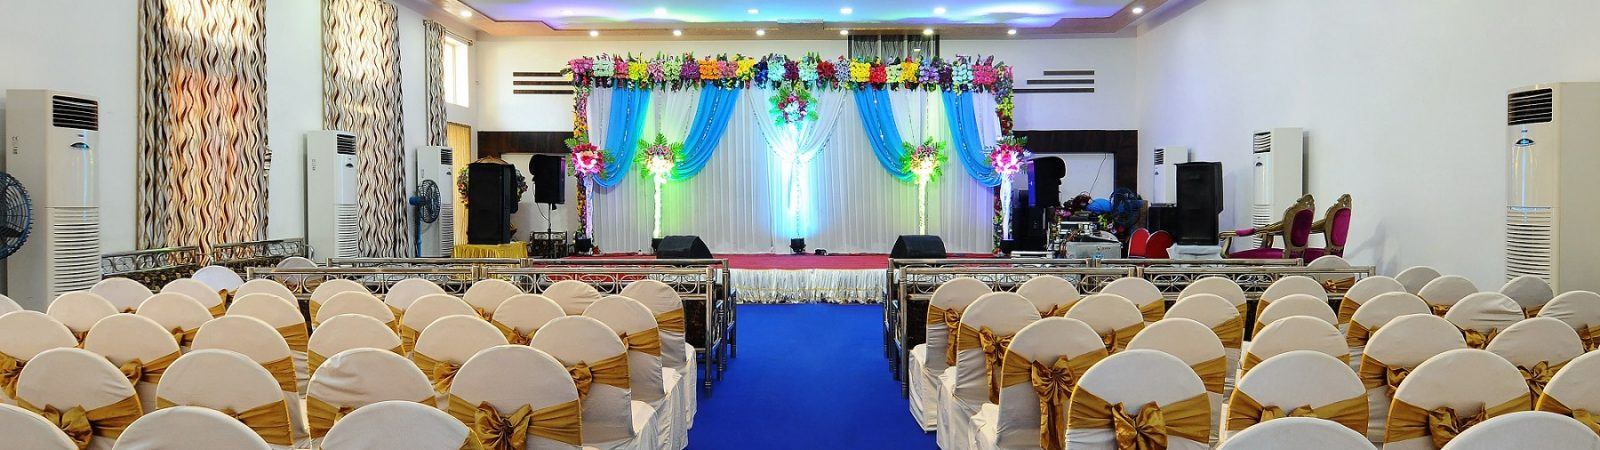 Best function hall in kompally, wedding halls in kompally,wonderful events